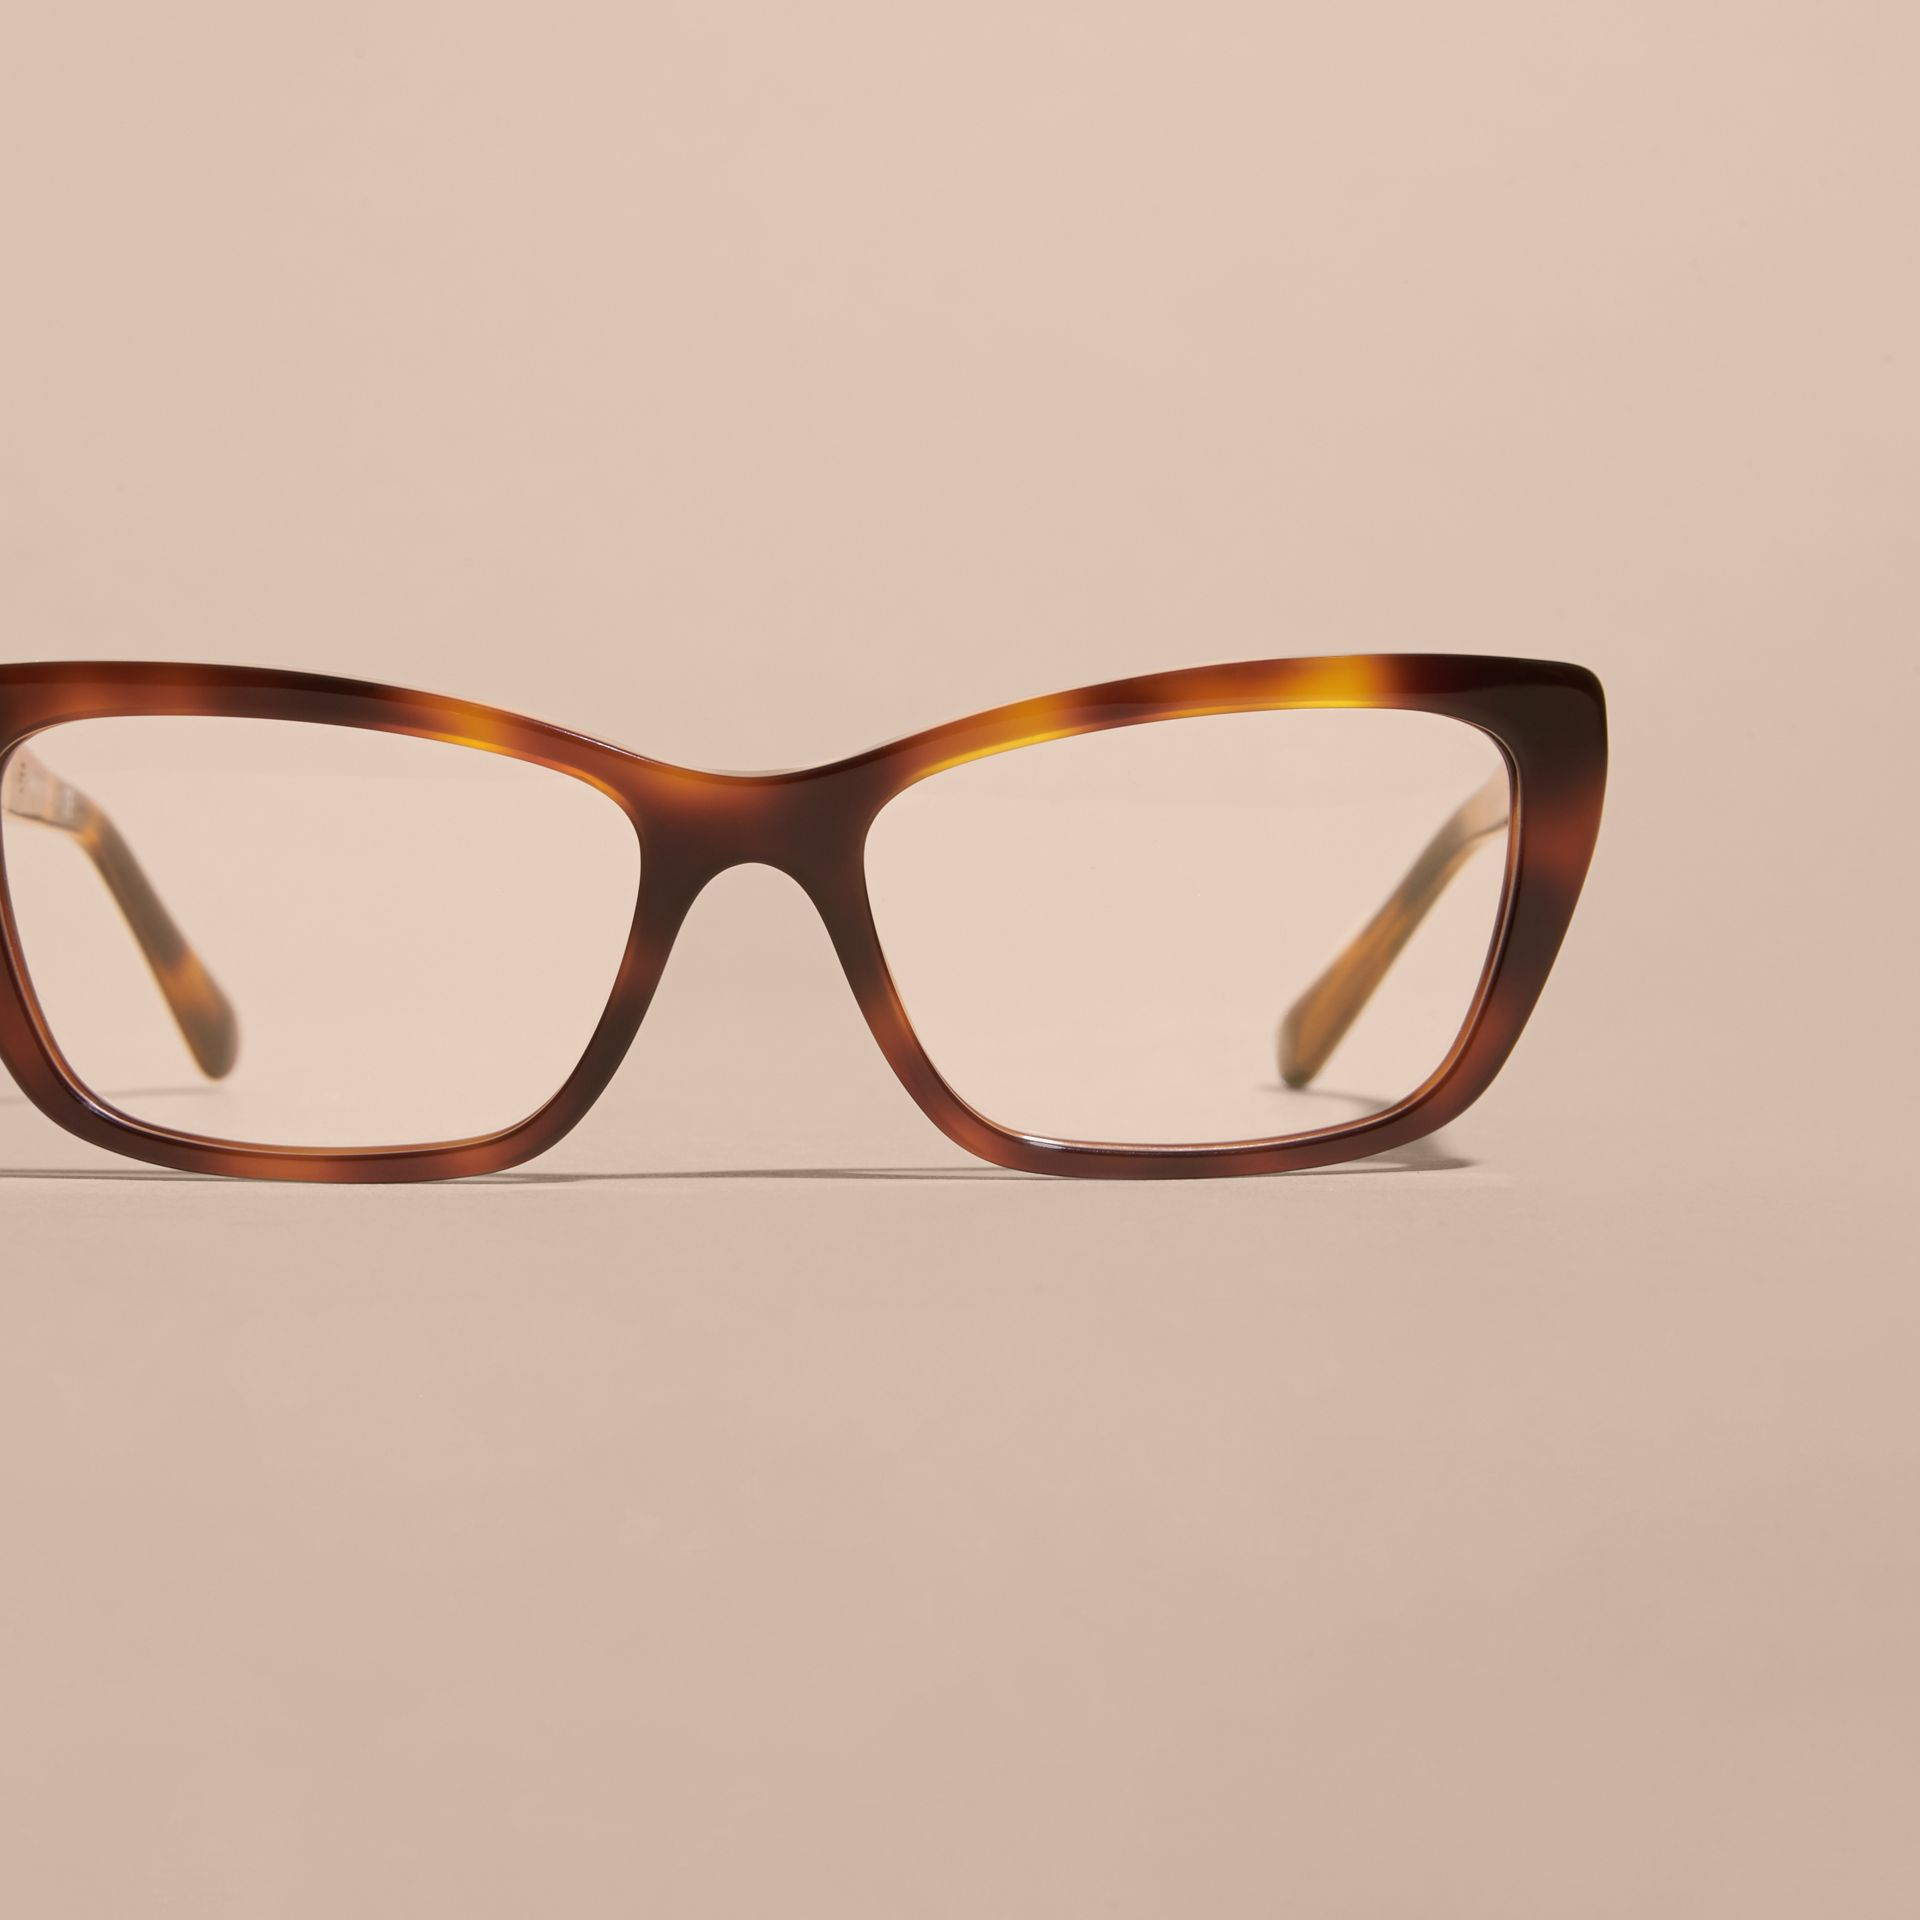 Light russet brown Check Detail Rectangular Cat-eye Optical Frames Light Russet Brown - gallery image 3